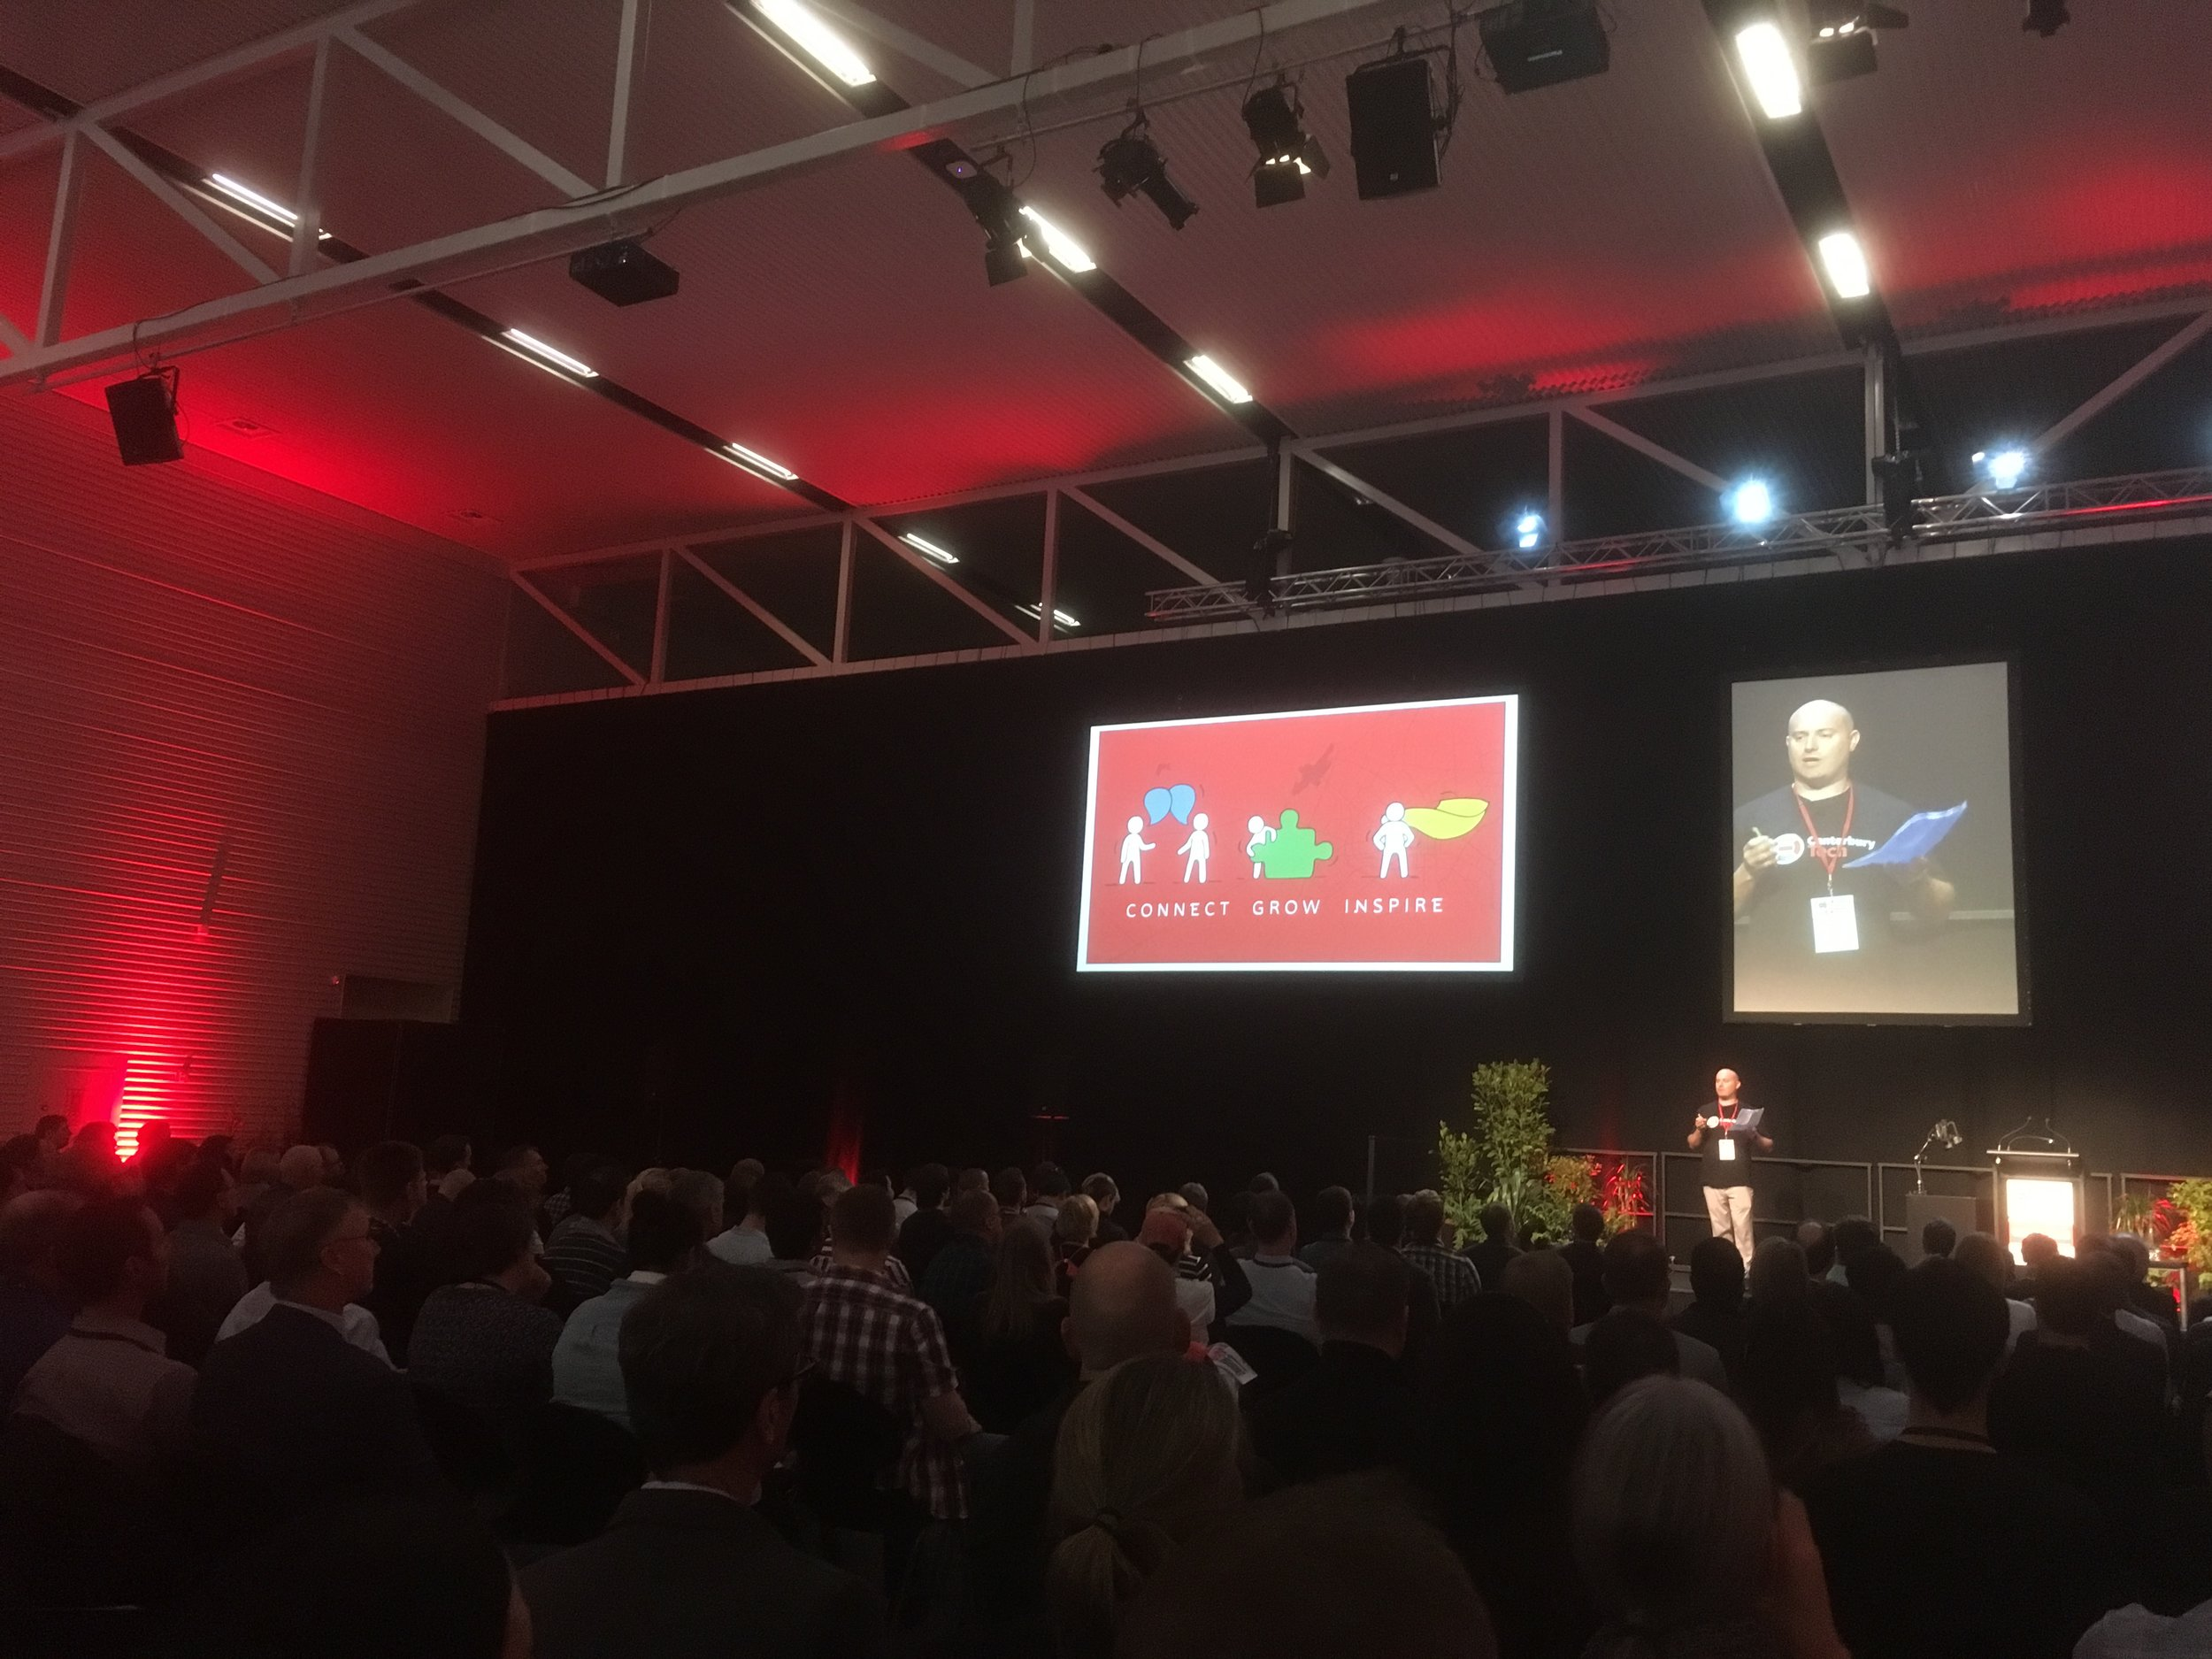 Connect, Grow & Inspire - Michael Trengrove, Chair of Canterbury Tech kicks off presidings photo by sunstone